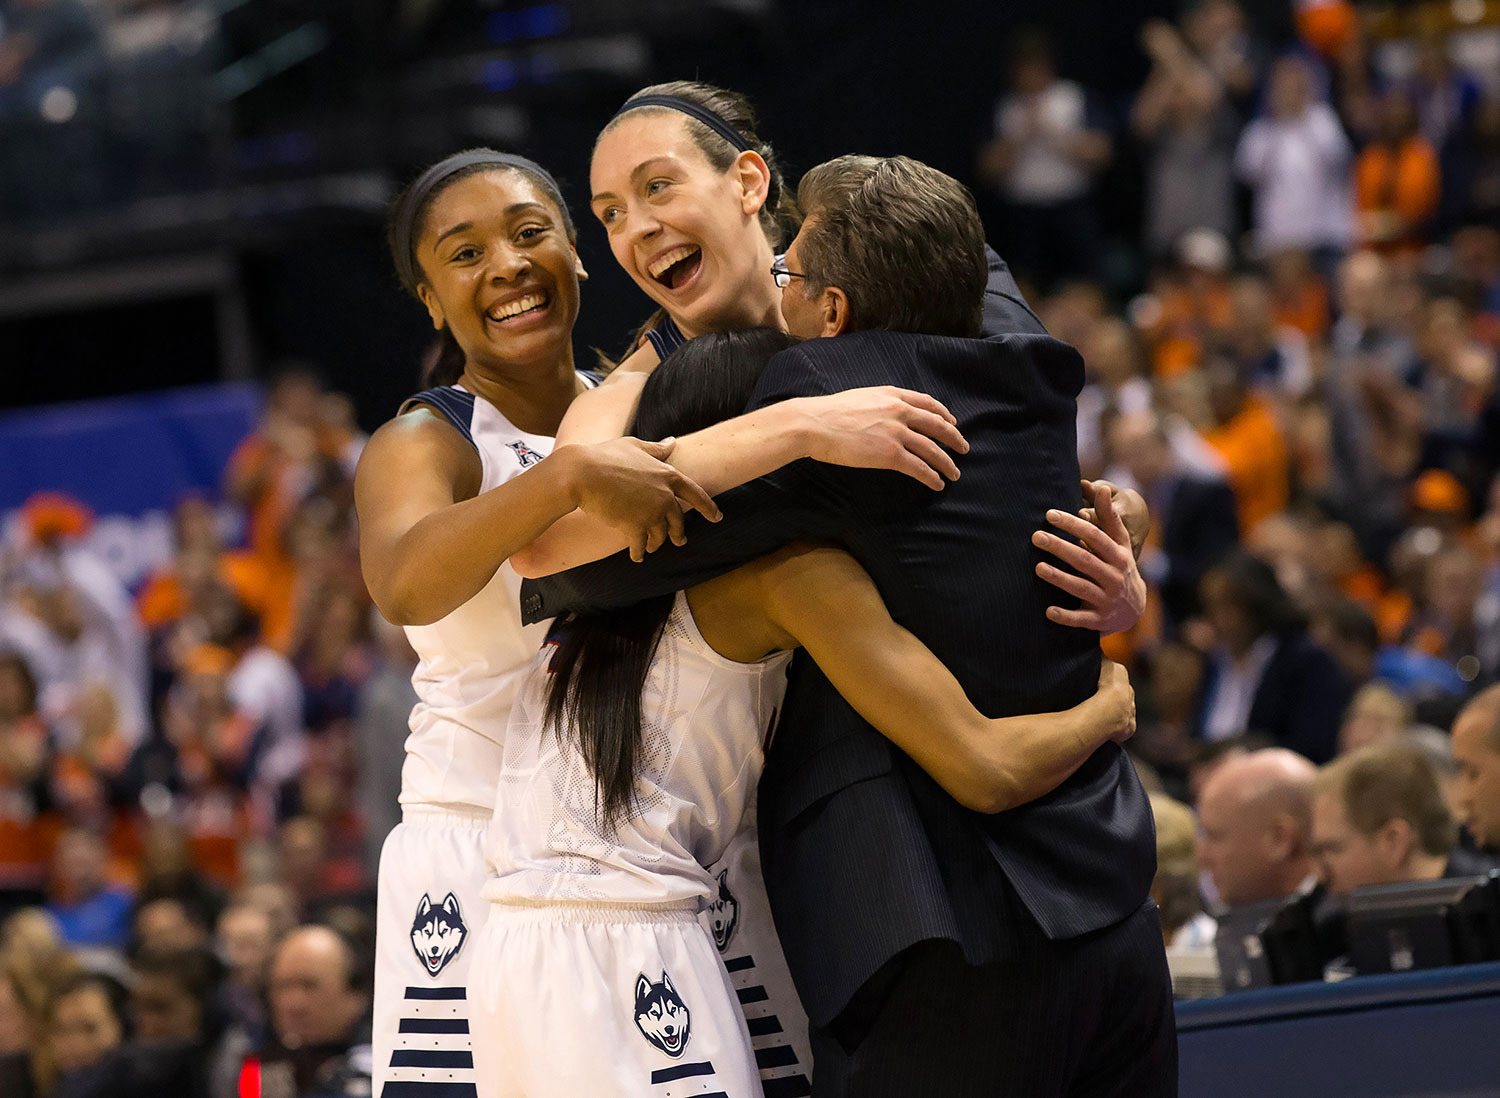 Geno Auriemma embraces UConn women's team players, Stewie, Mo, and Tuck, after 2016 championship win